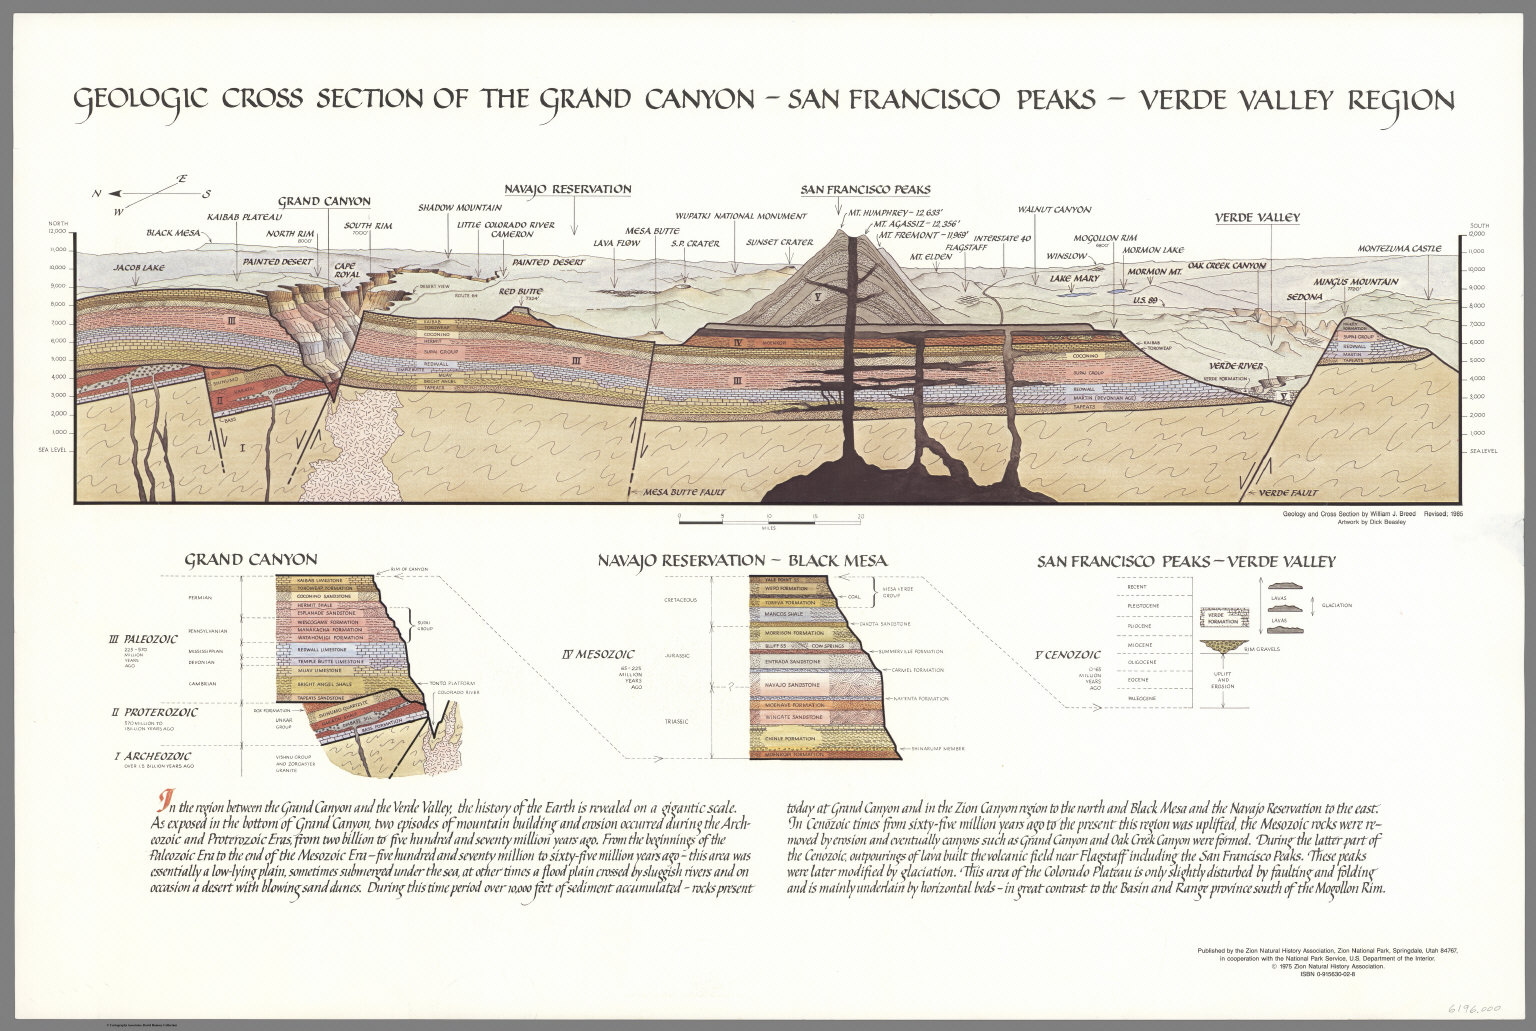 Geologic Cross Section of the Grand Canyon Region San Francisco